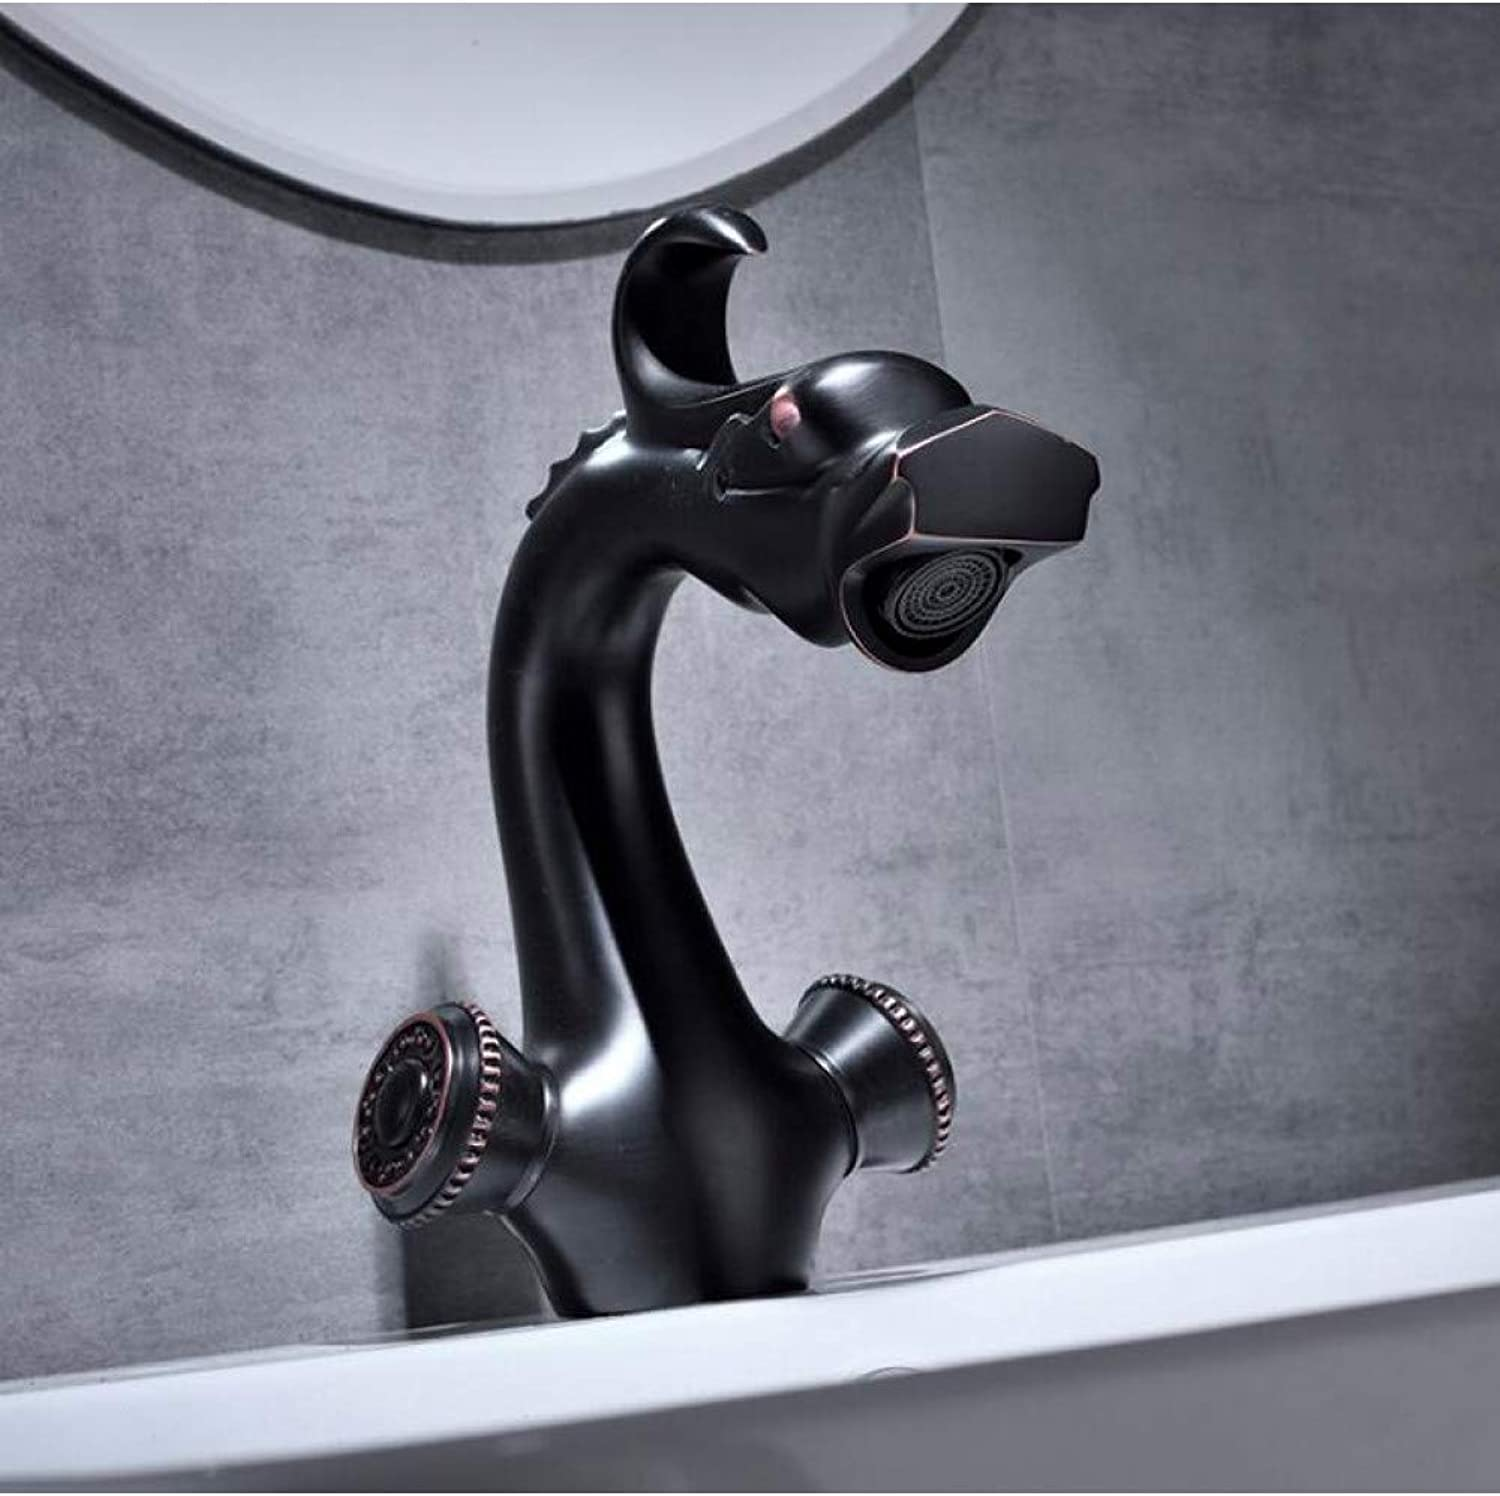 YHSGY Bathroom Sink Taps New Black Brass Dragon Design Water Mixer Bathroom Faucet Dual Clawfoot Handle Wash Basin Faucet Hot and Cold Faucet